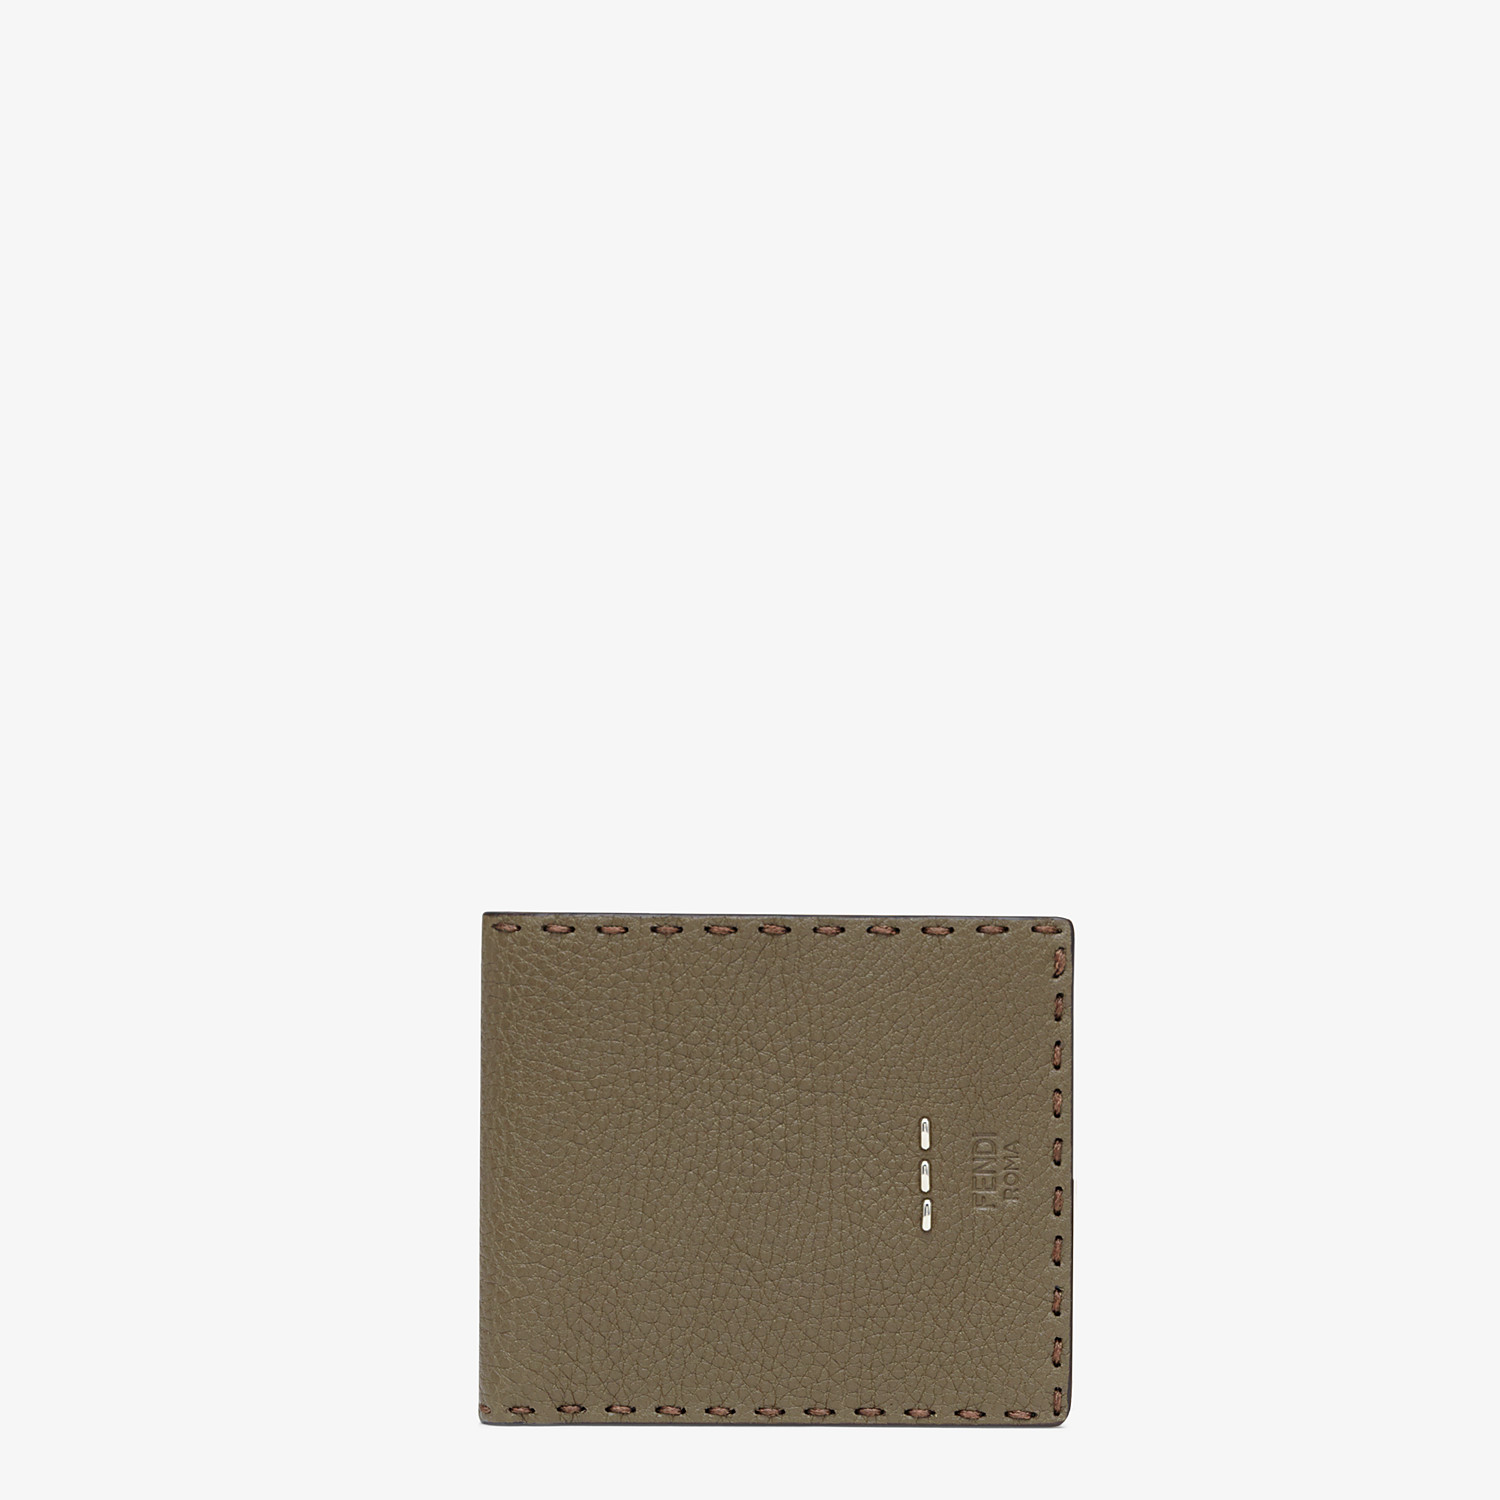 FENDI WALLET - Green leather bi-fold wallet - view 1 detail